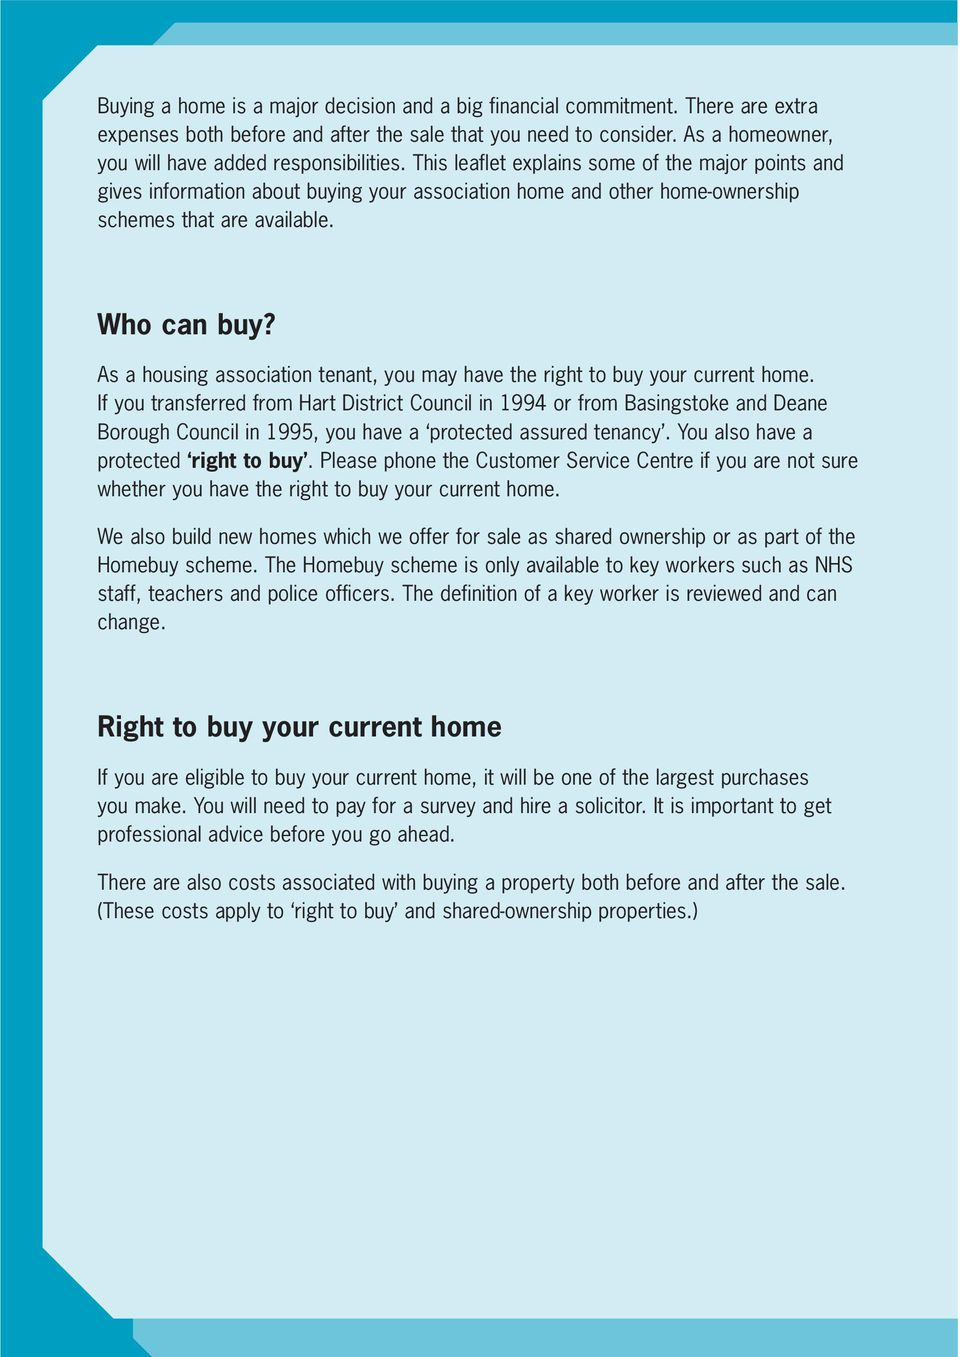 This leaflet explains some of the major points and gives information about buying your association home and other home-ownership schemes that are available. Who can buy?